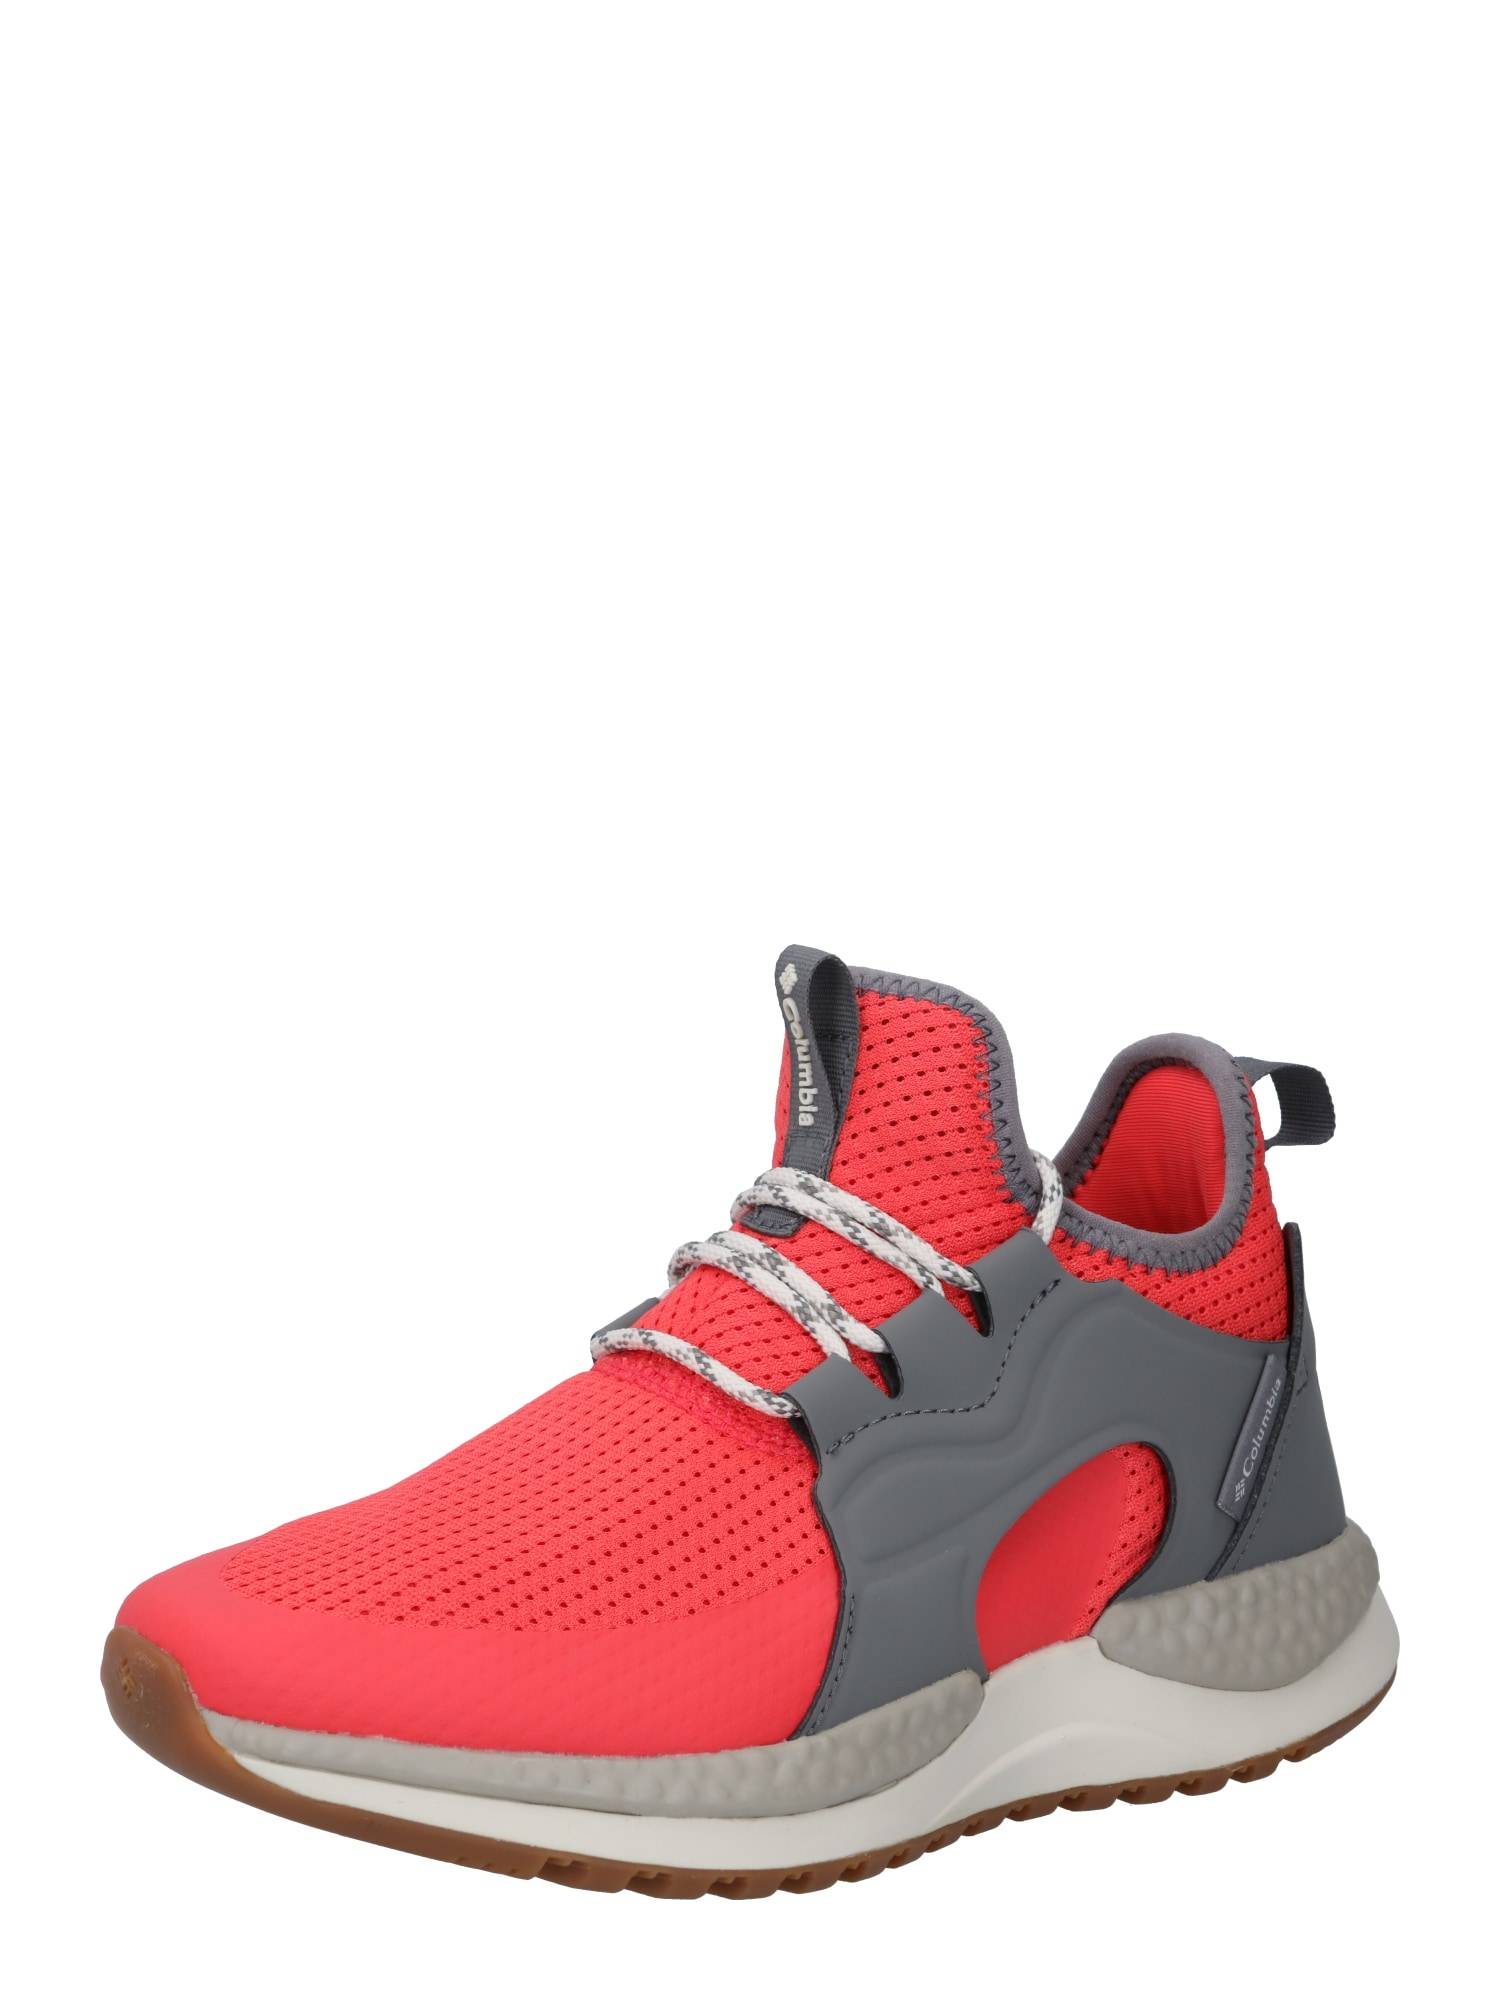 Columbia Baskets basses 'AURORA'  - Rouge - Taille: 10 - female